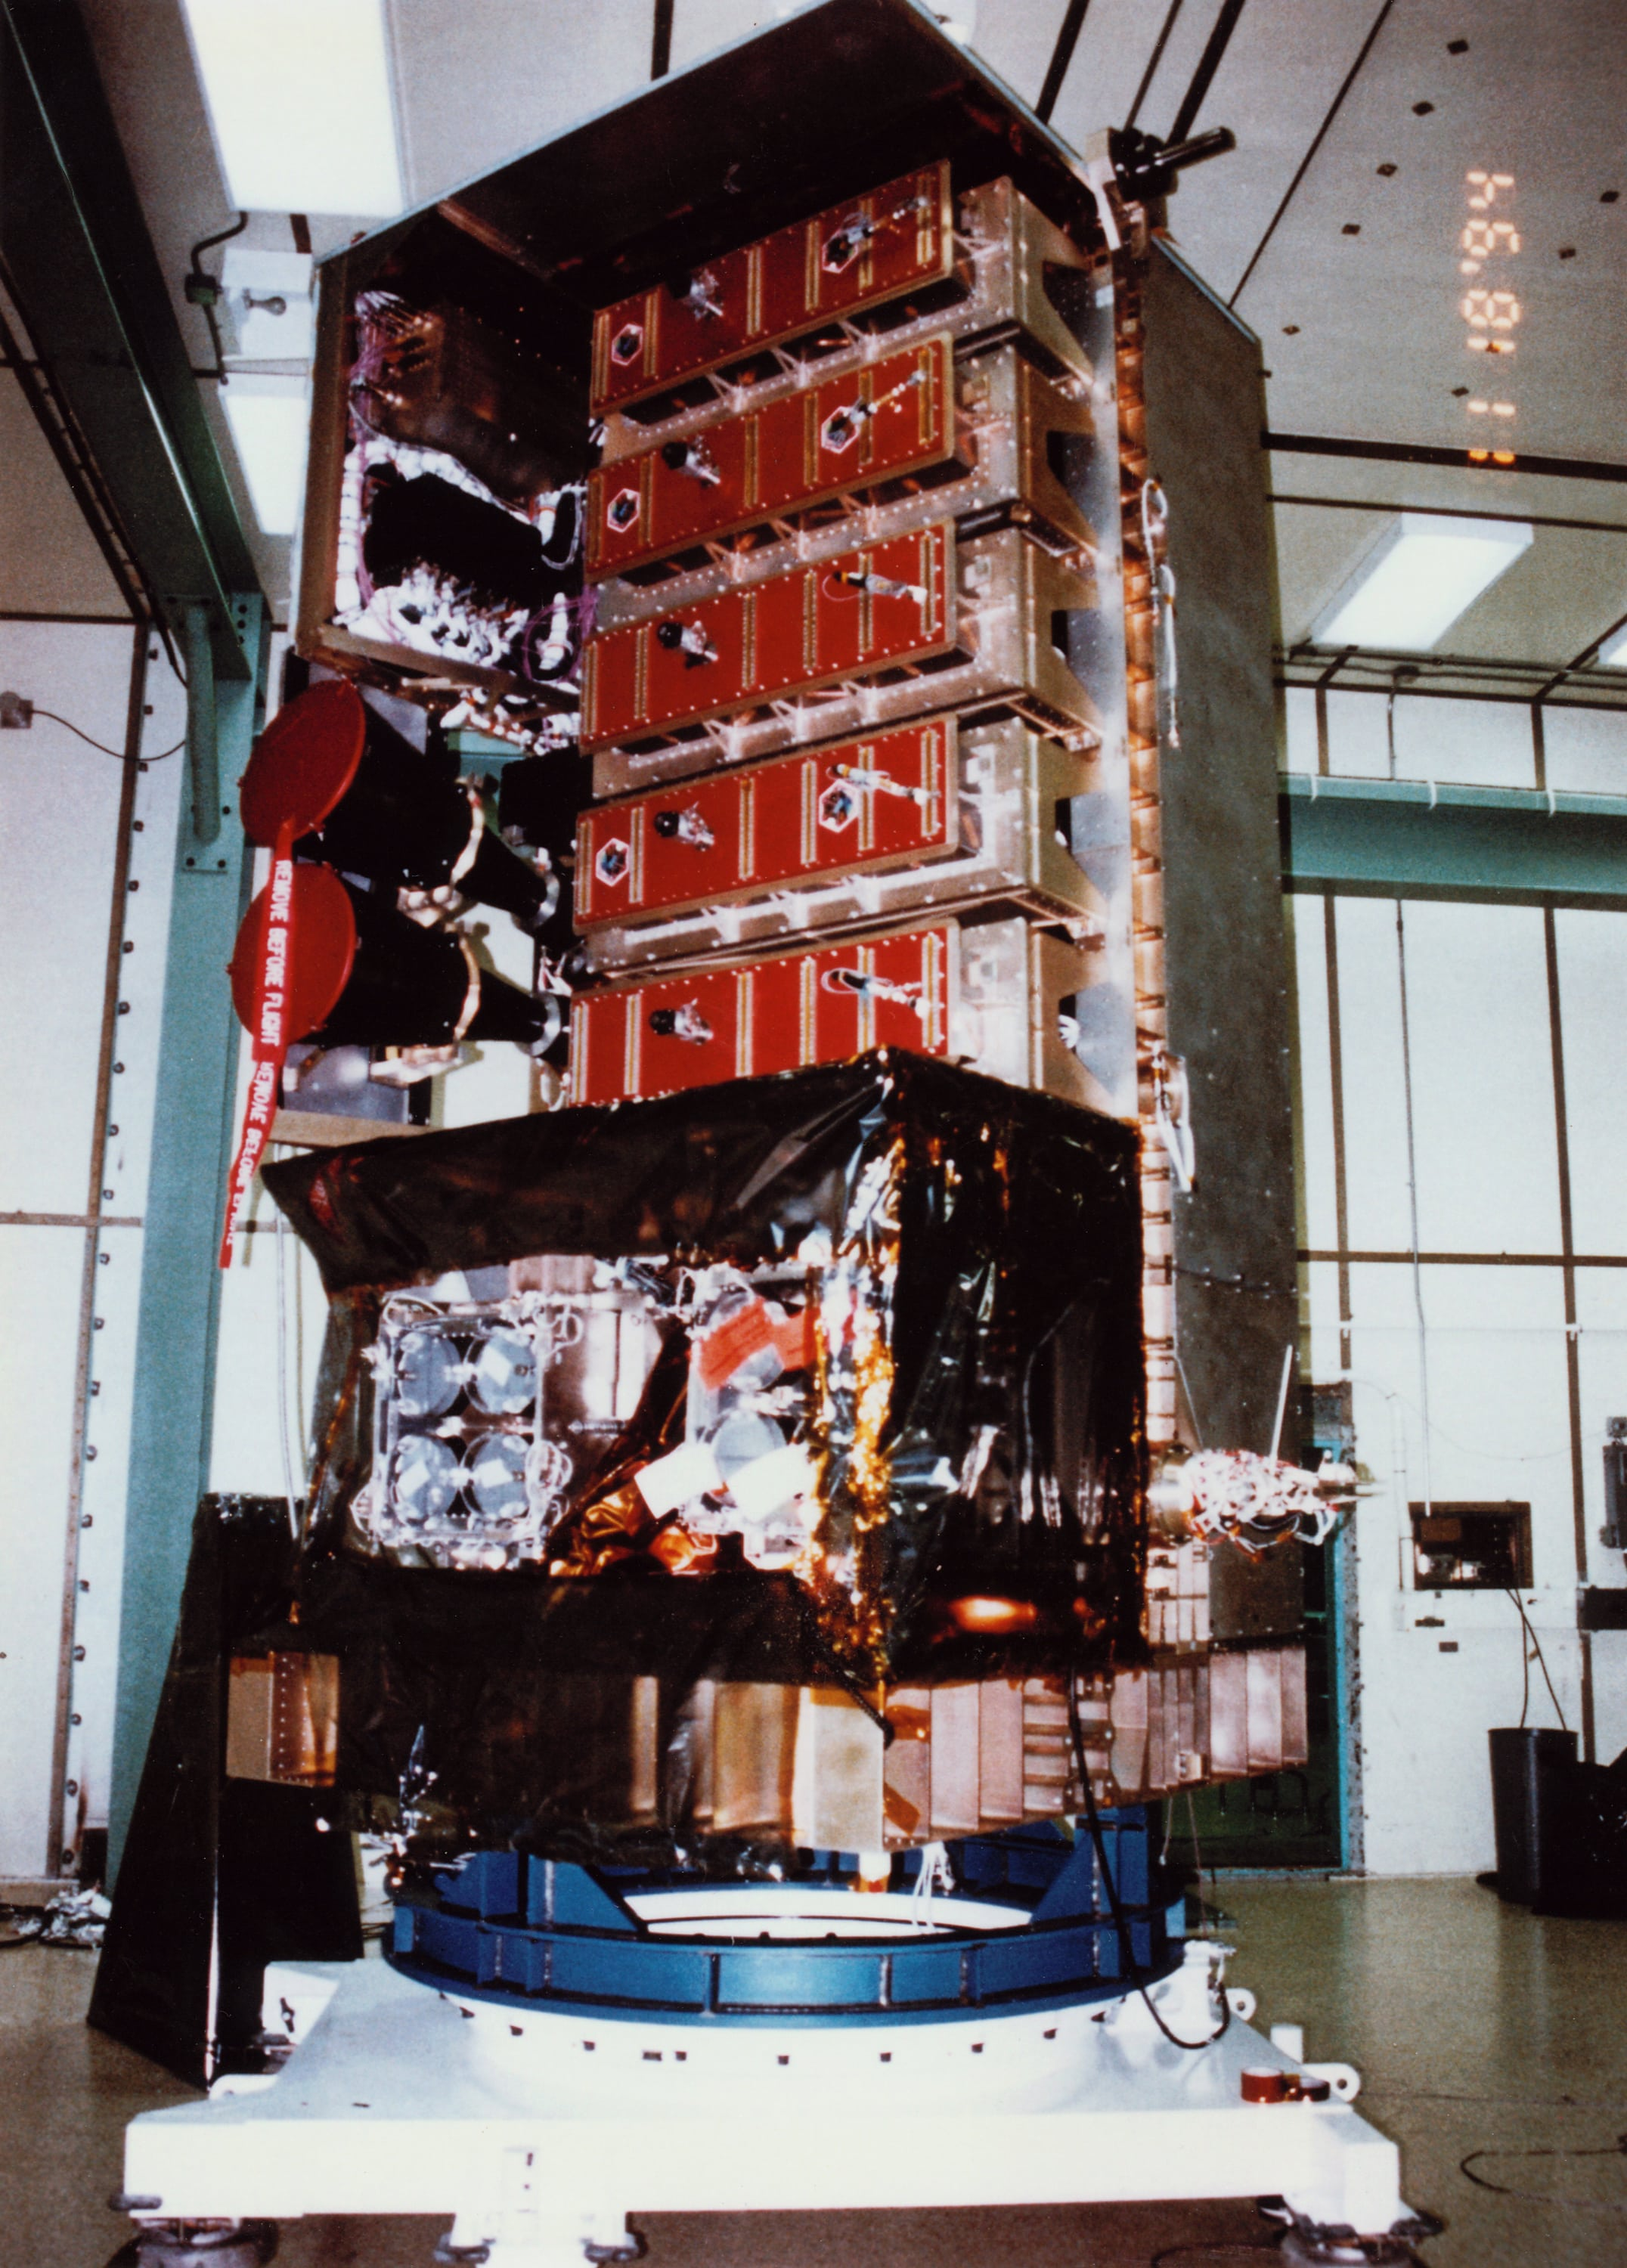 Image: The measurement of the black hole's mass is due to high-precision timing observations made by NASA's Rossi X-ray Timing Explorer satellite, shown here prior to launch.